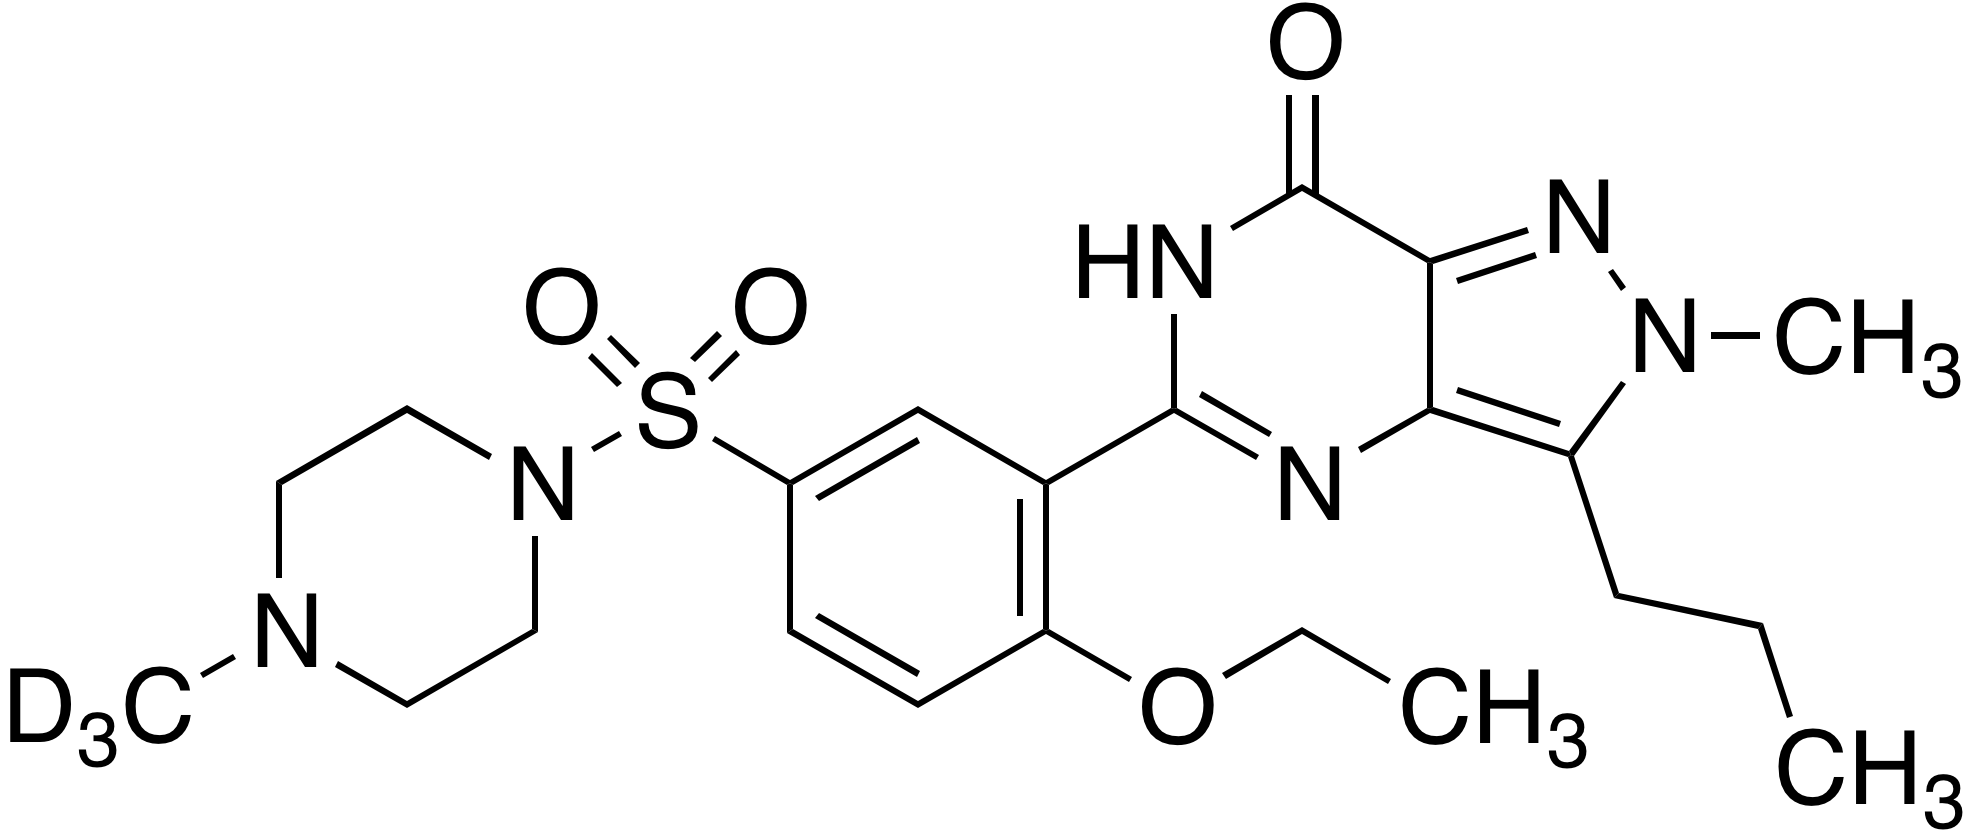 Iso sildenafil-d<sub>3</sub> (methyl-d<sub>3</sub>)